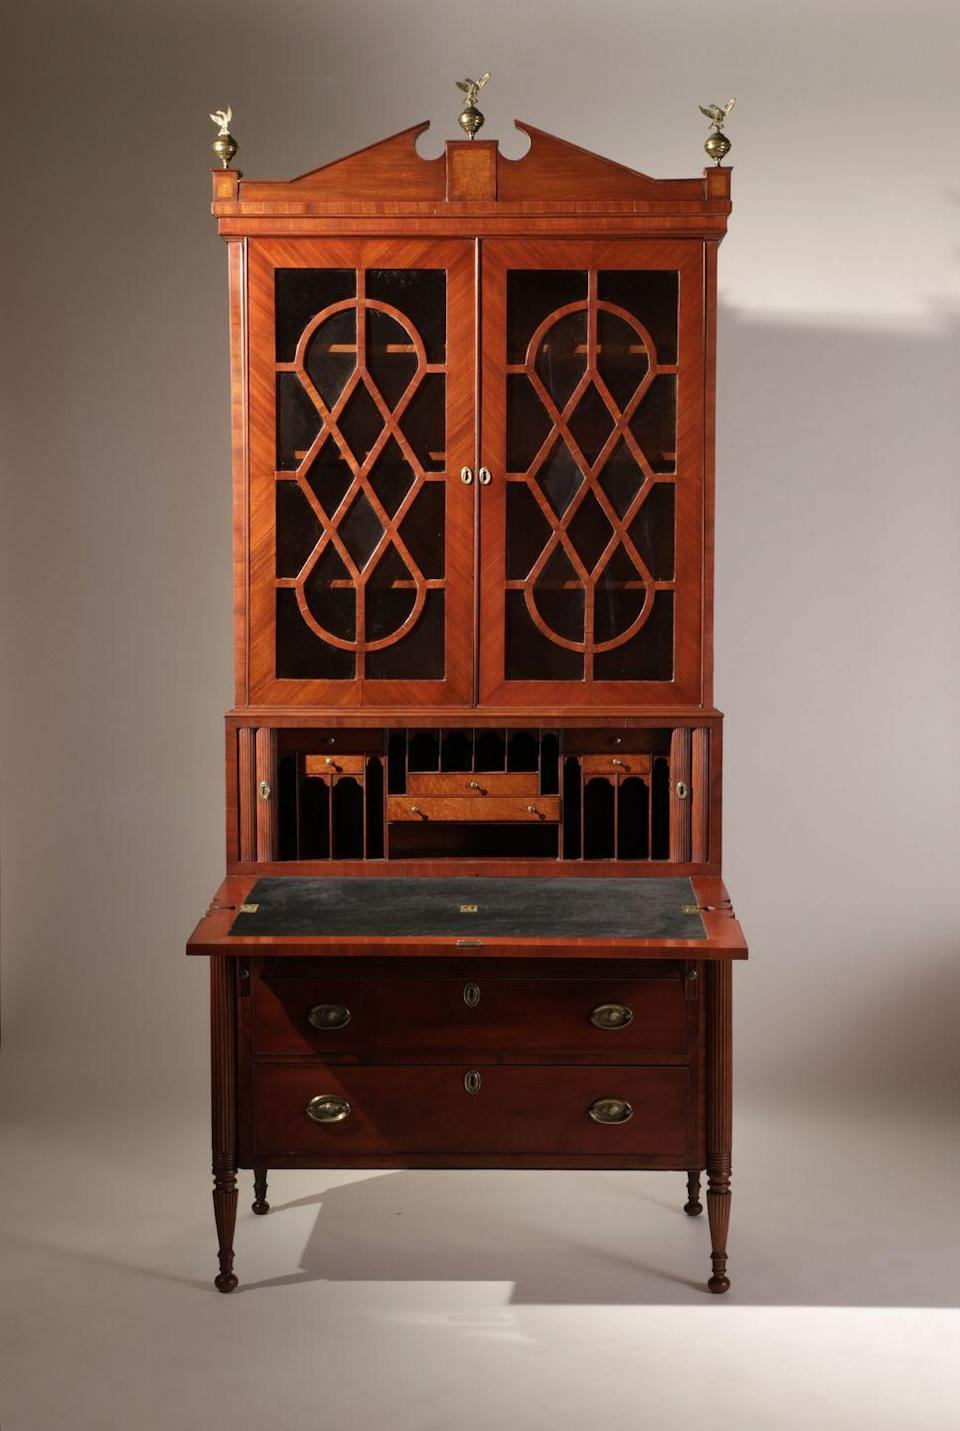 """<p>""""This secretary bookcase from <a href=""""https://www.liverantantiques.com/"""" rel=""""nofollow noopener"""" target=""""_blank"""" data-ylk=""""slk:Nathan Liverant"""" class=""""link rapid-noclick-resp"""">Nathan Liverant</a> has many wonderful assets. It will add architecture to any room, and the inventive pierced door grilles are, as they say, motion-filled. The timber is very fine and beautiful."""" —<em>Thomas Jayne</em></p>"""